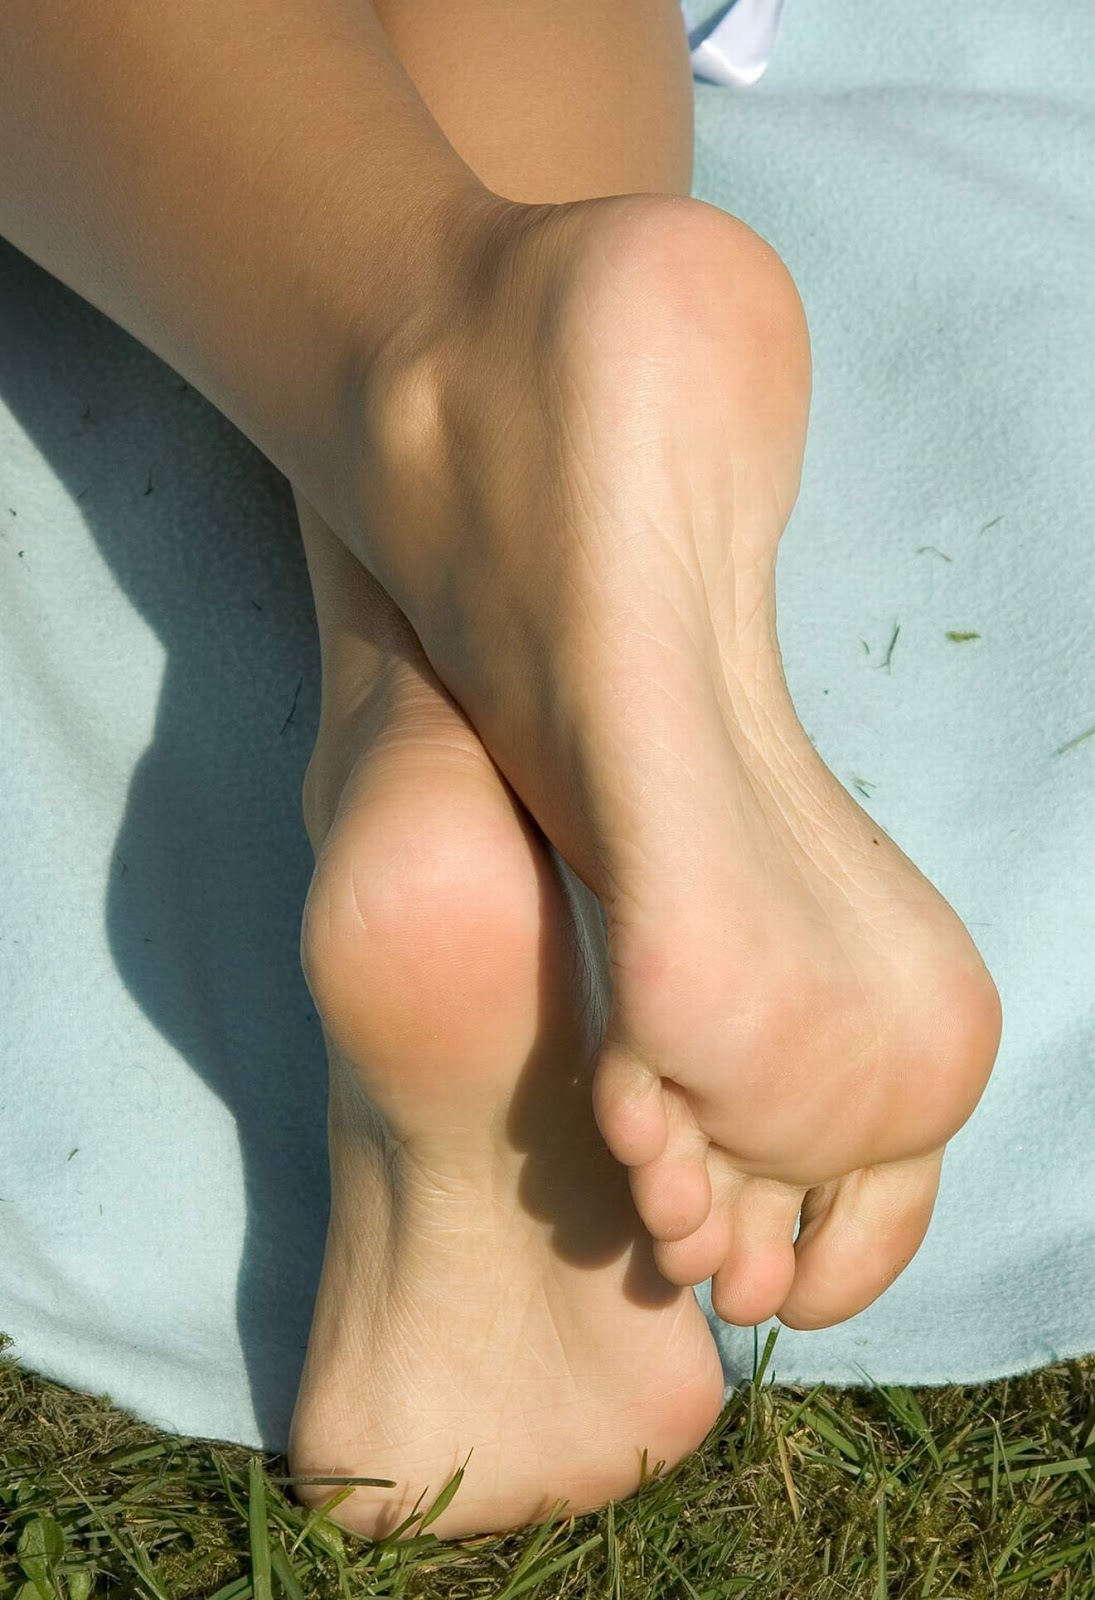 Ebony Foot Fetish Gallery